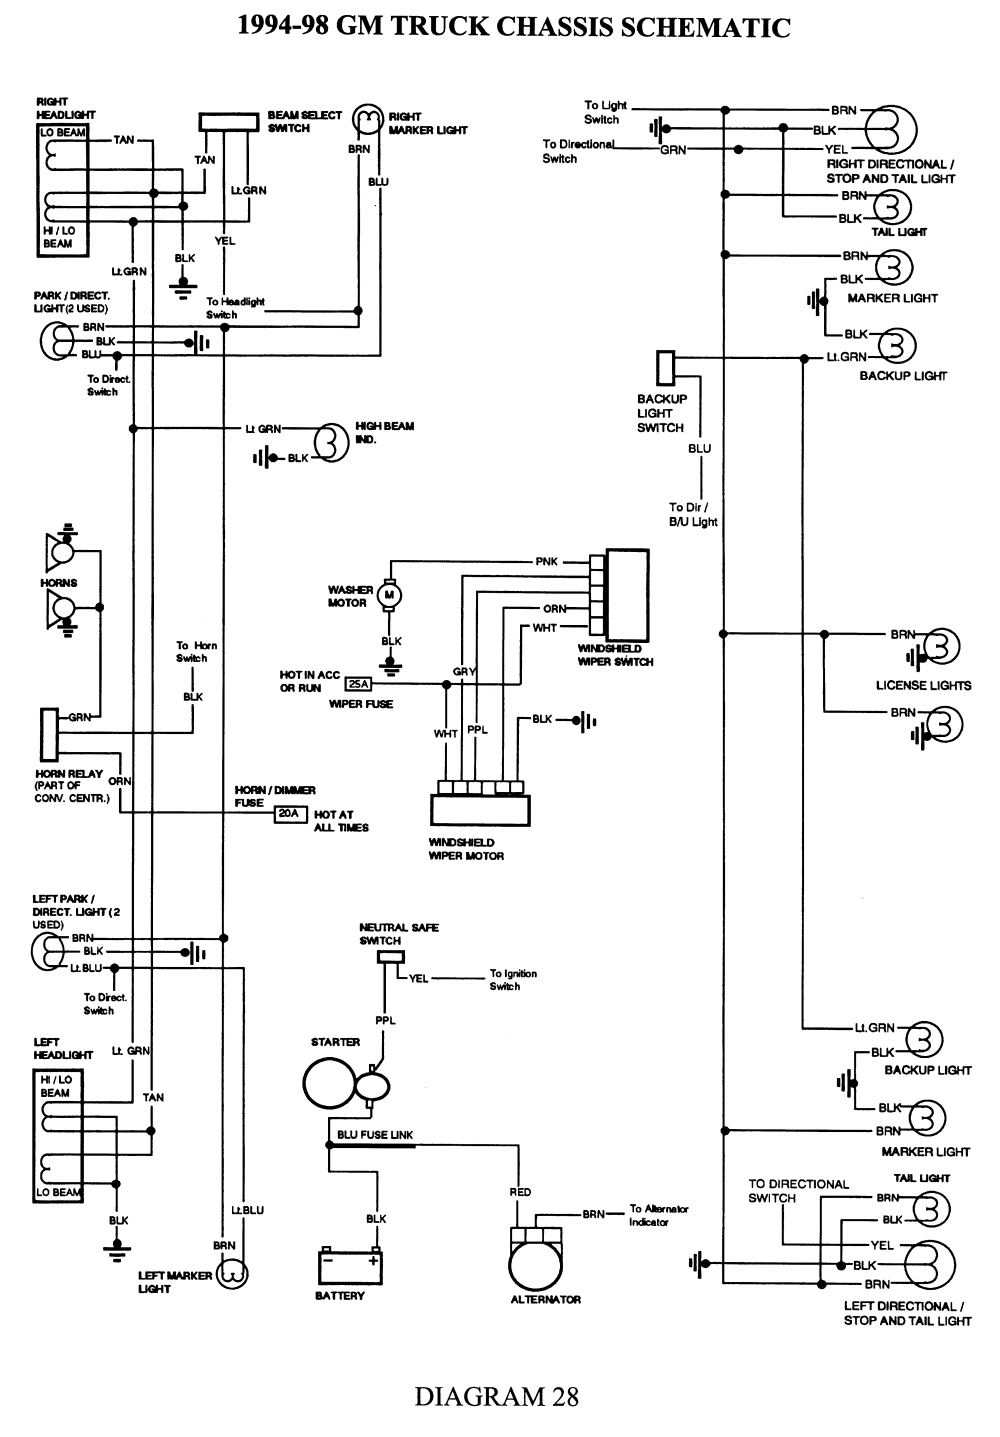 99 gmc sierra wiring diagram electrical diagrams forum u2022 rh jimmellon co uk 2008 gmc sierra headlight wiring diagram 2008 gmc sierra wiring diagram